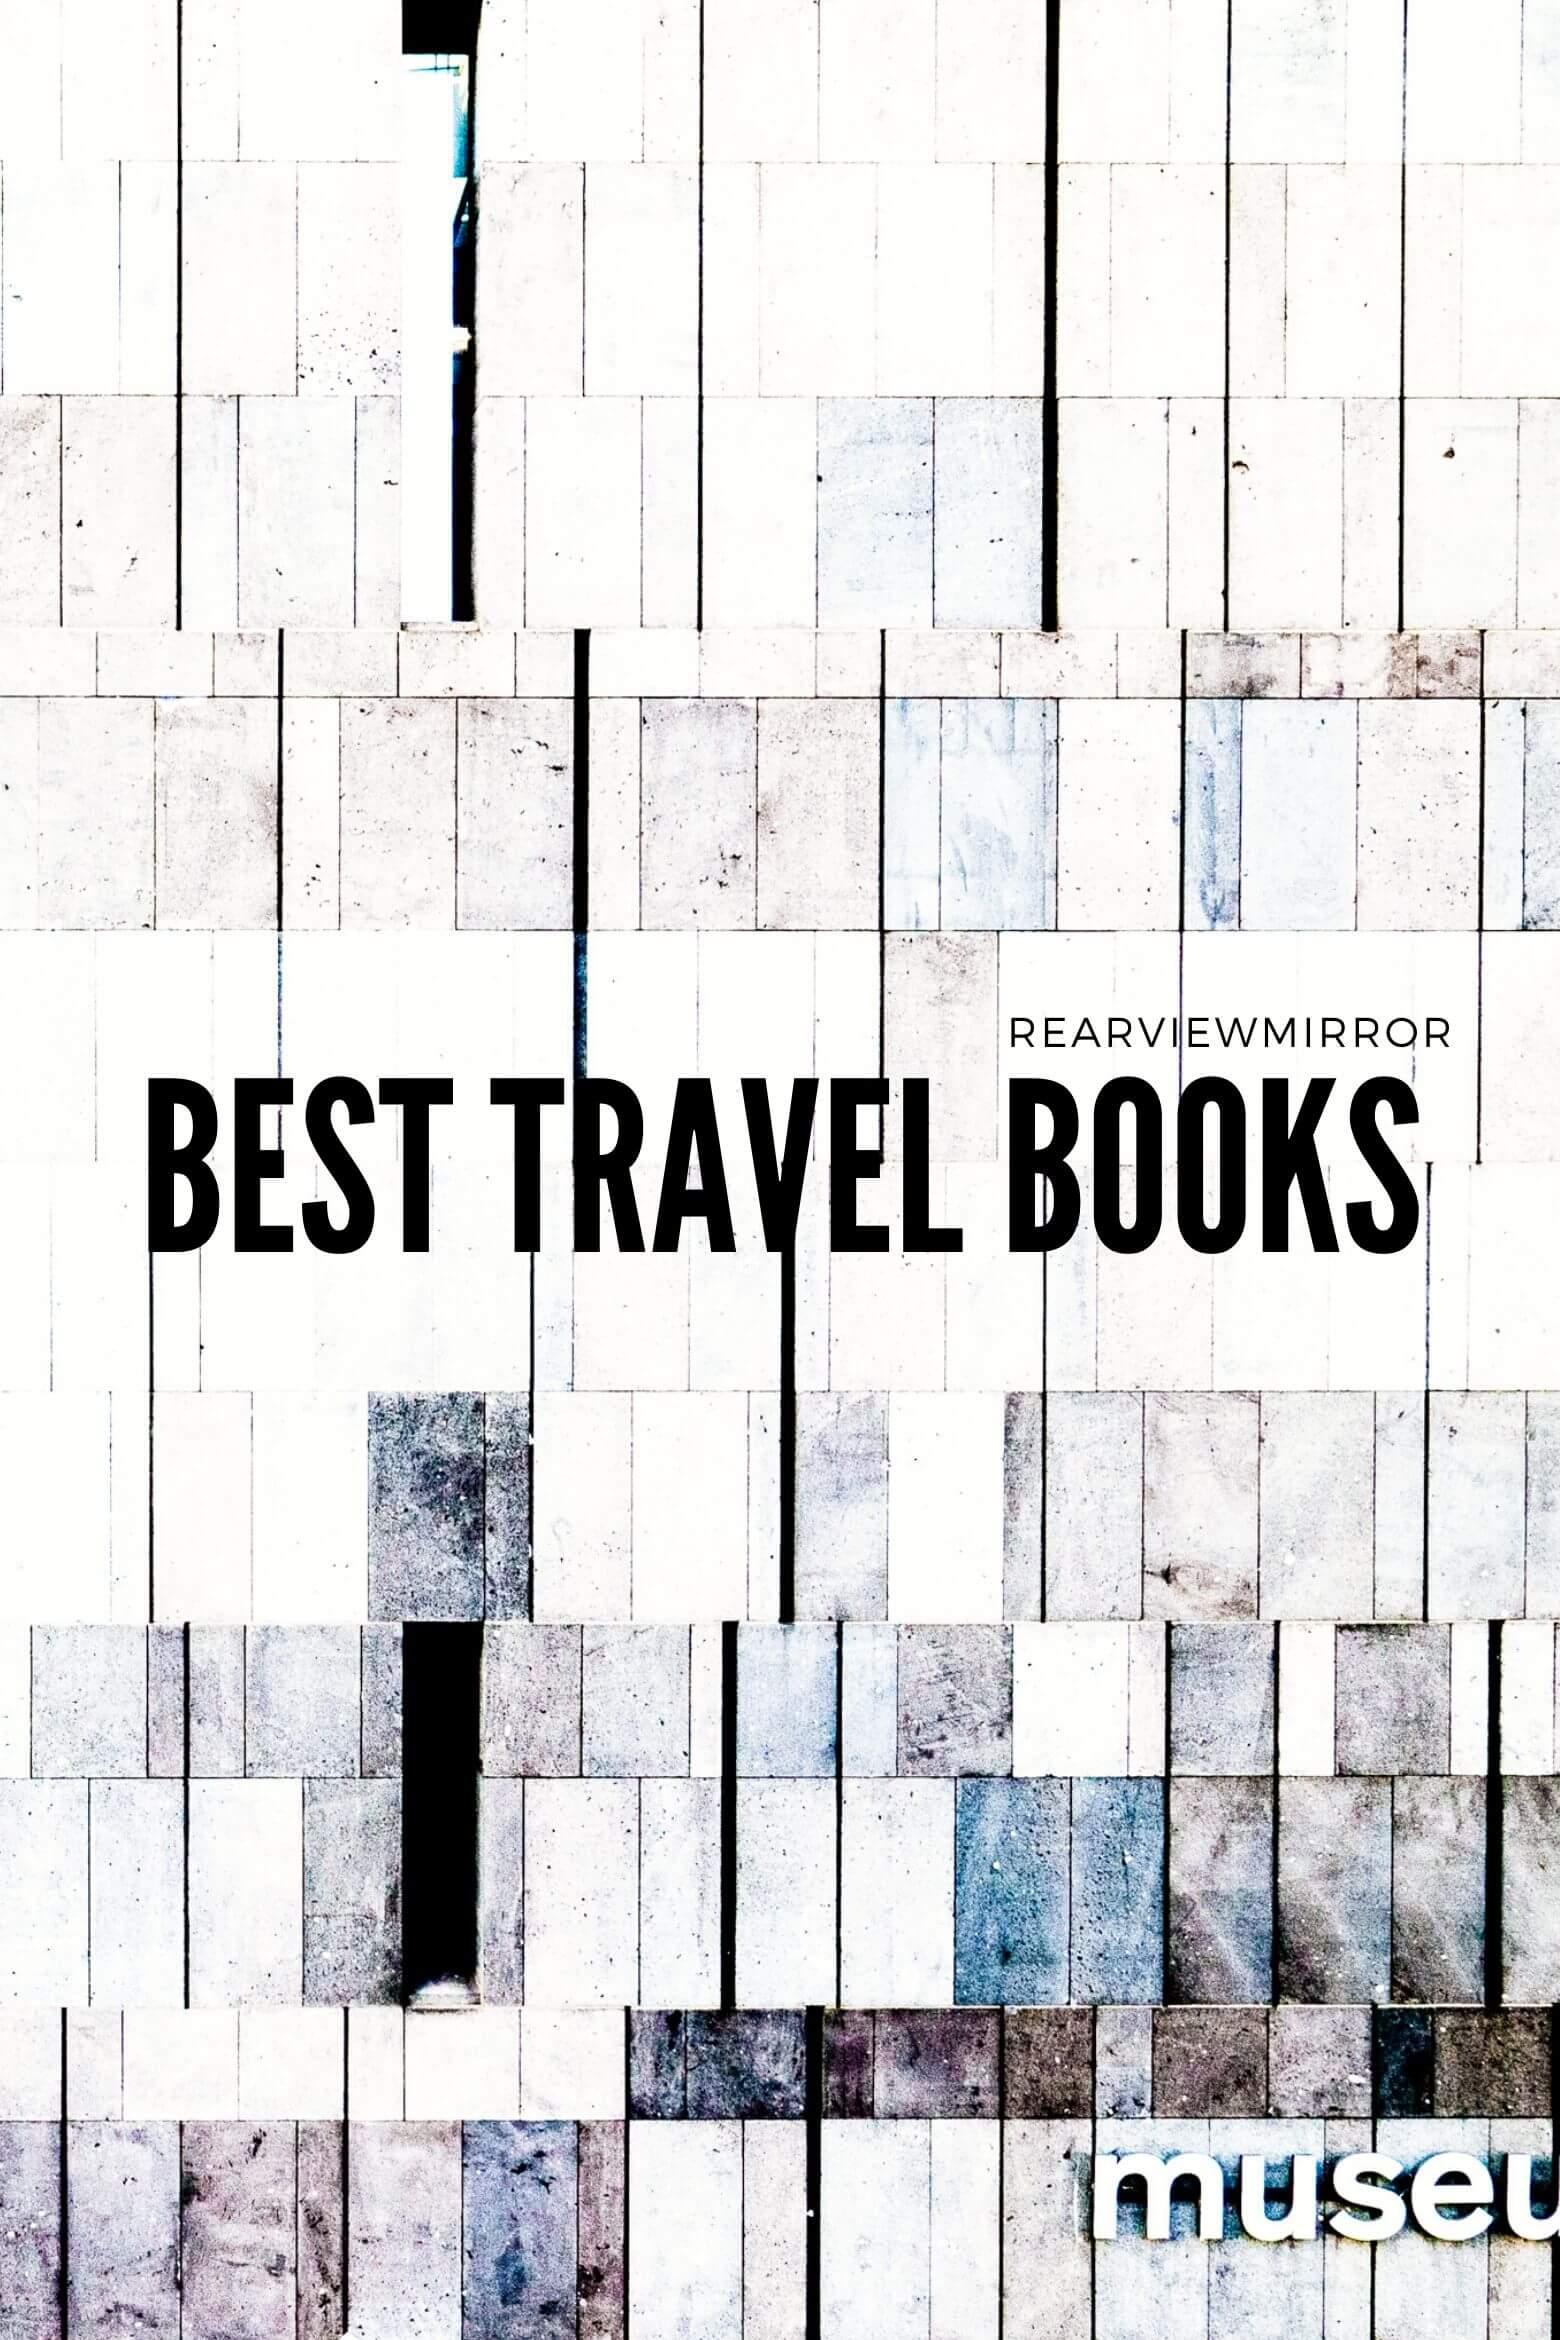 Best Travel Books of All Time